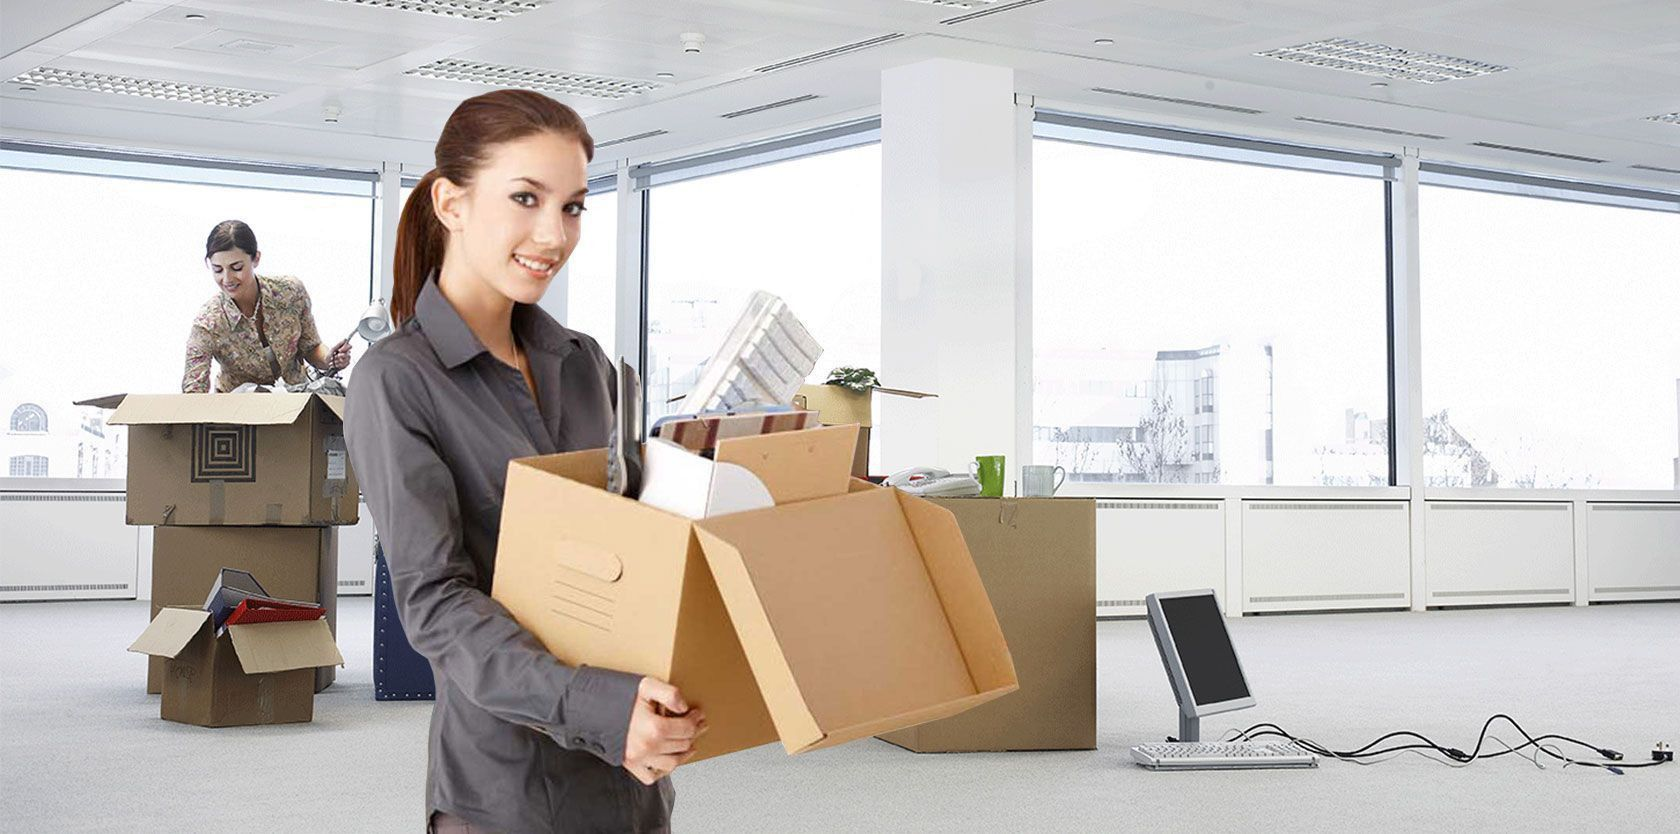 How to Find Professional Movers and Packers in Abu Dhabi